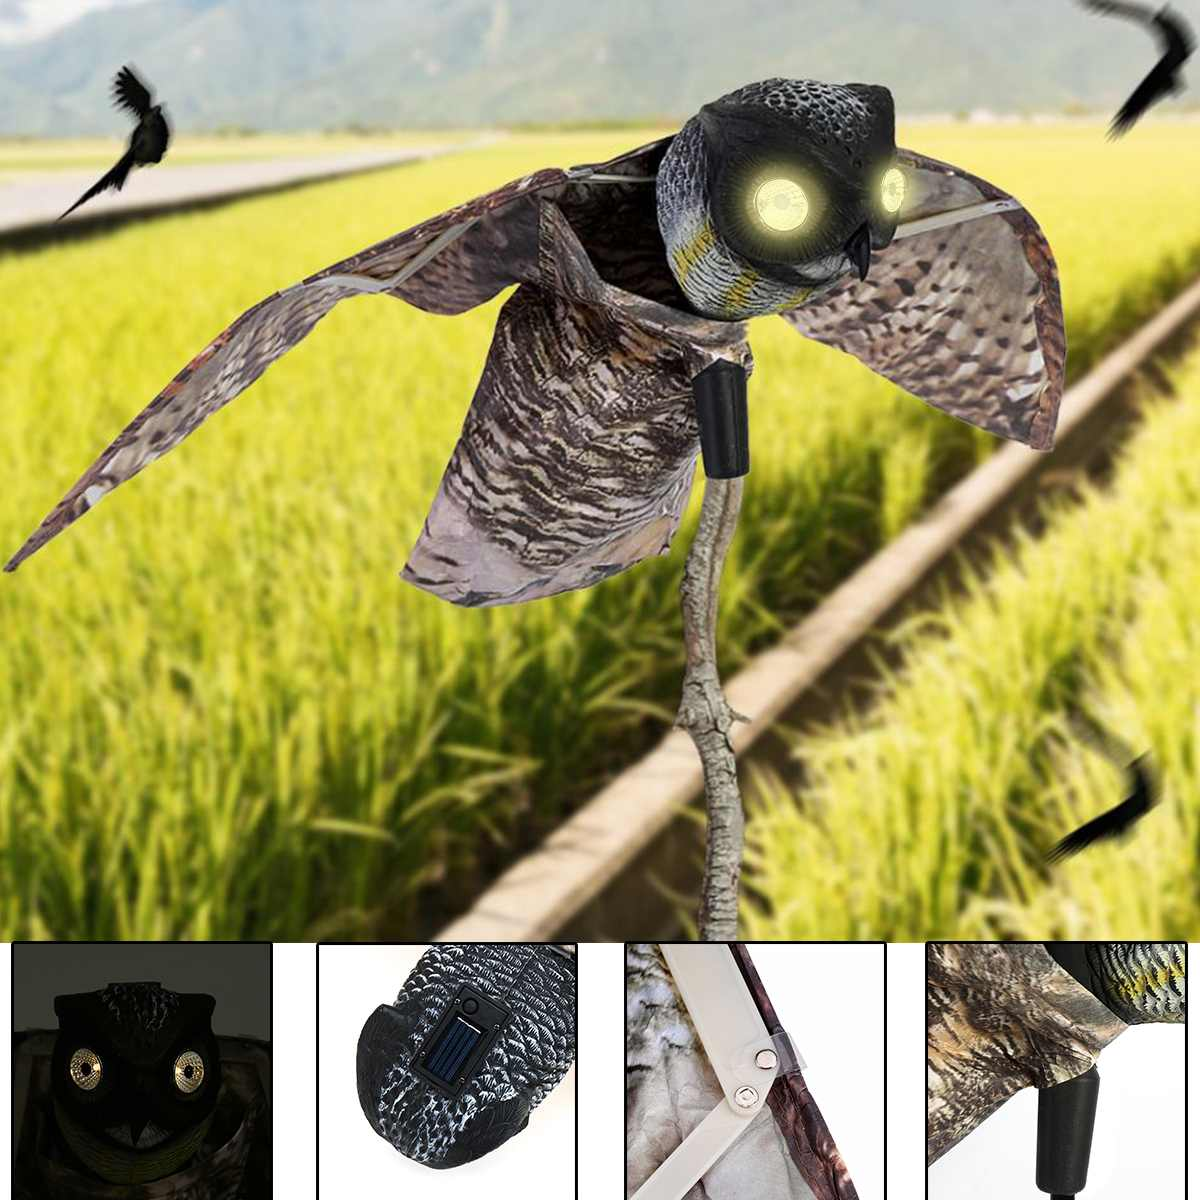 Bird Scarer Dynamic Moving Wings Realistic Plastic Fake Owl Decoy Pest Repellent Bird Scare Garden Yard Decor Outdoor Decoration